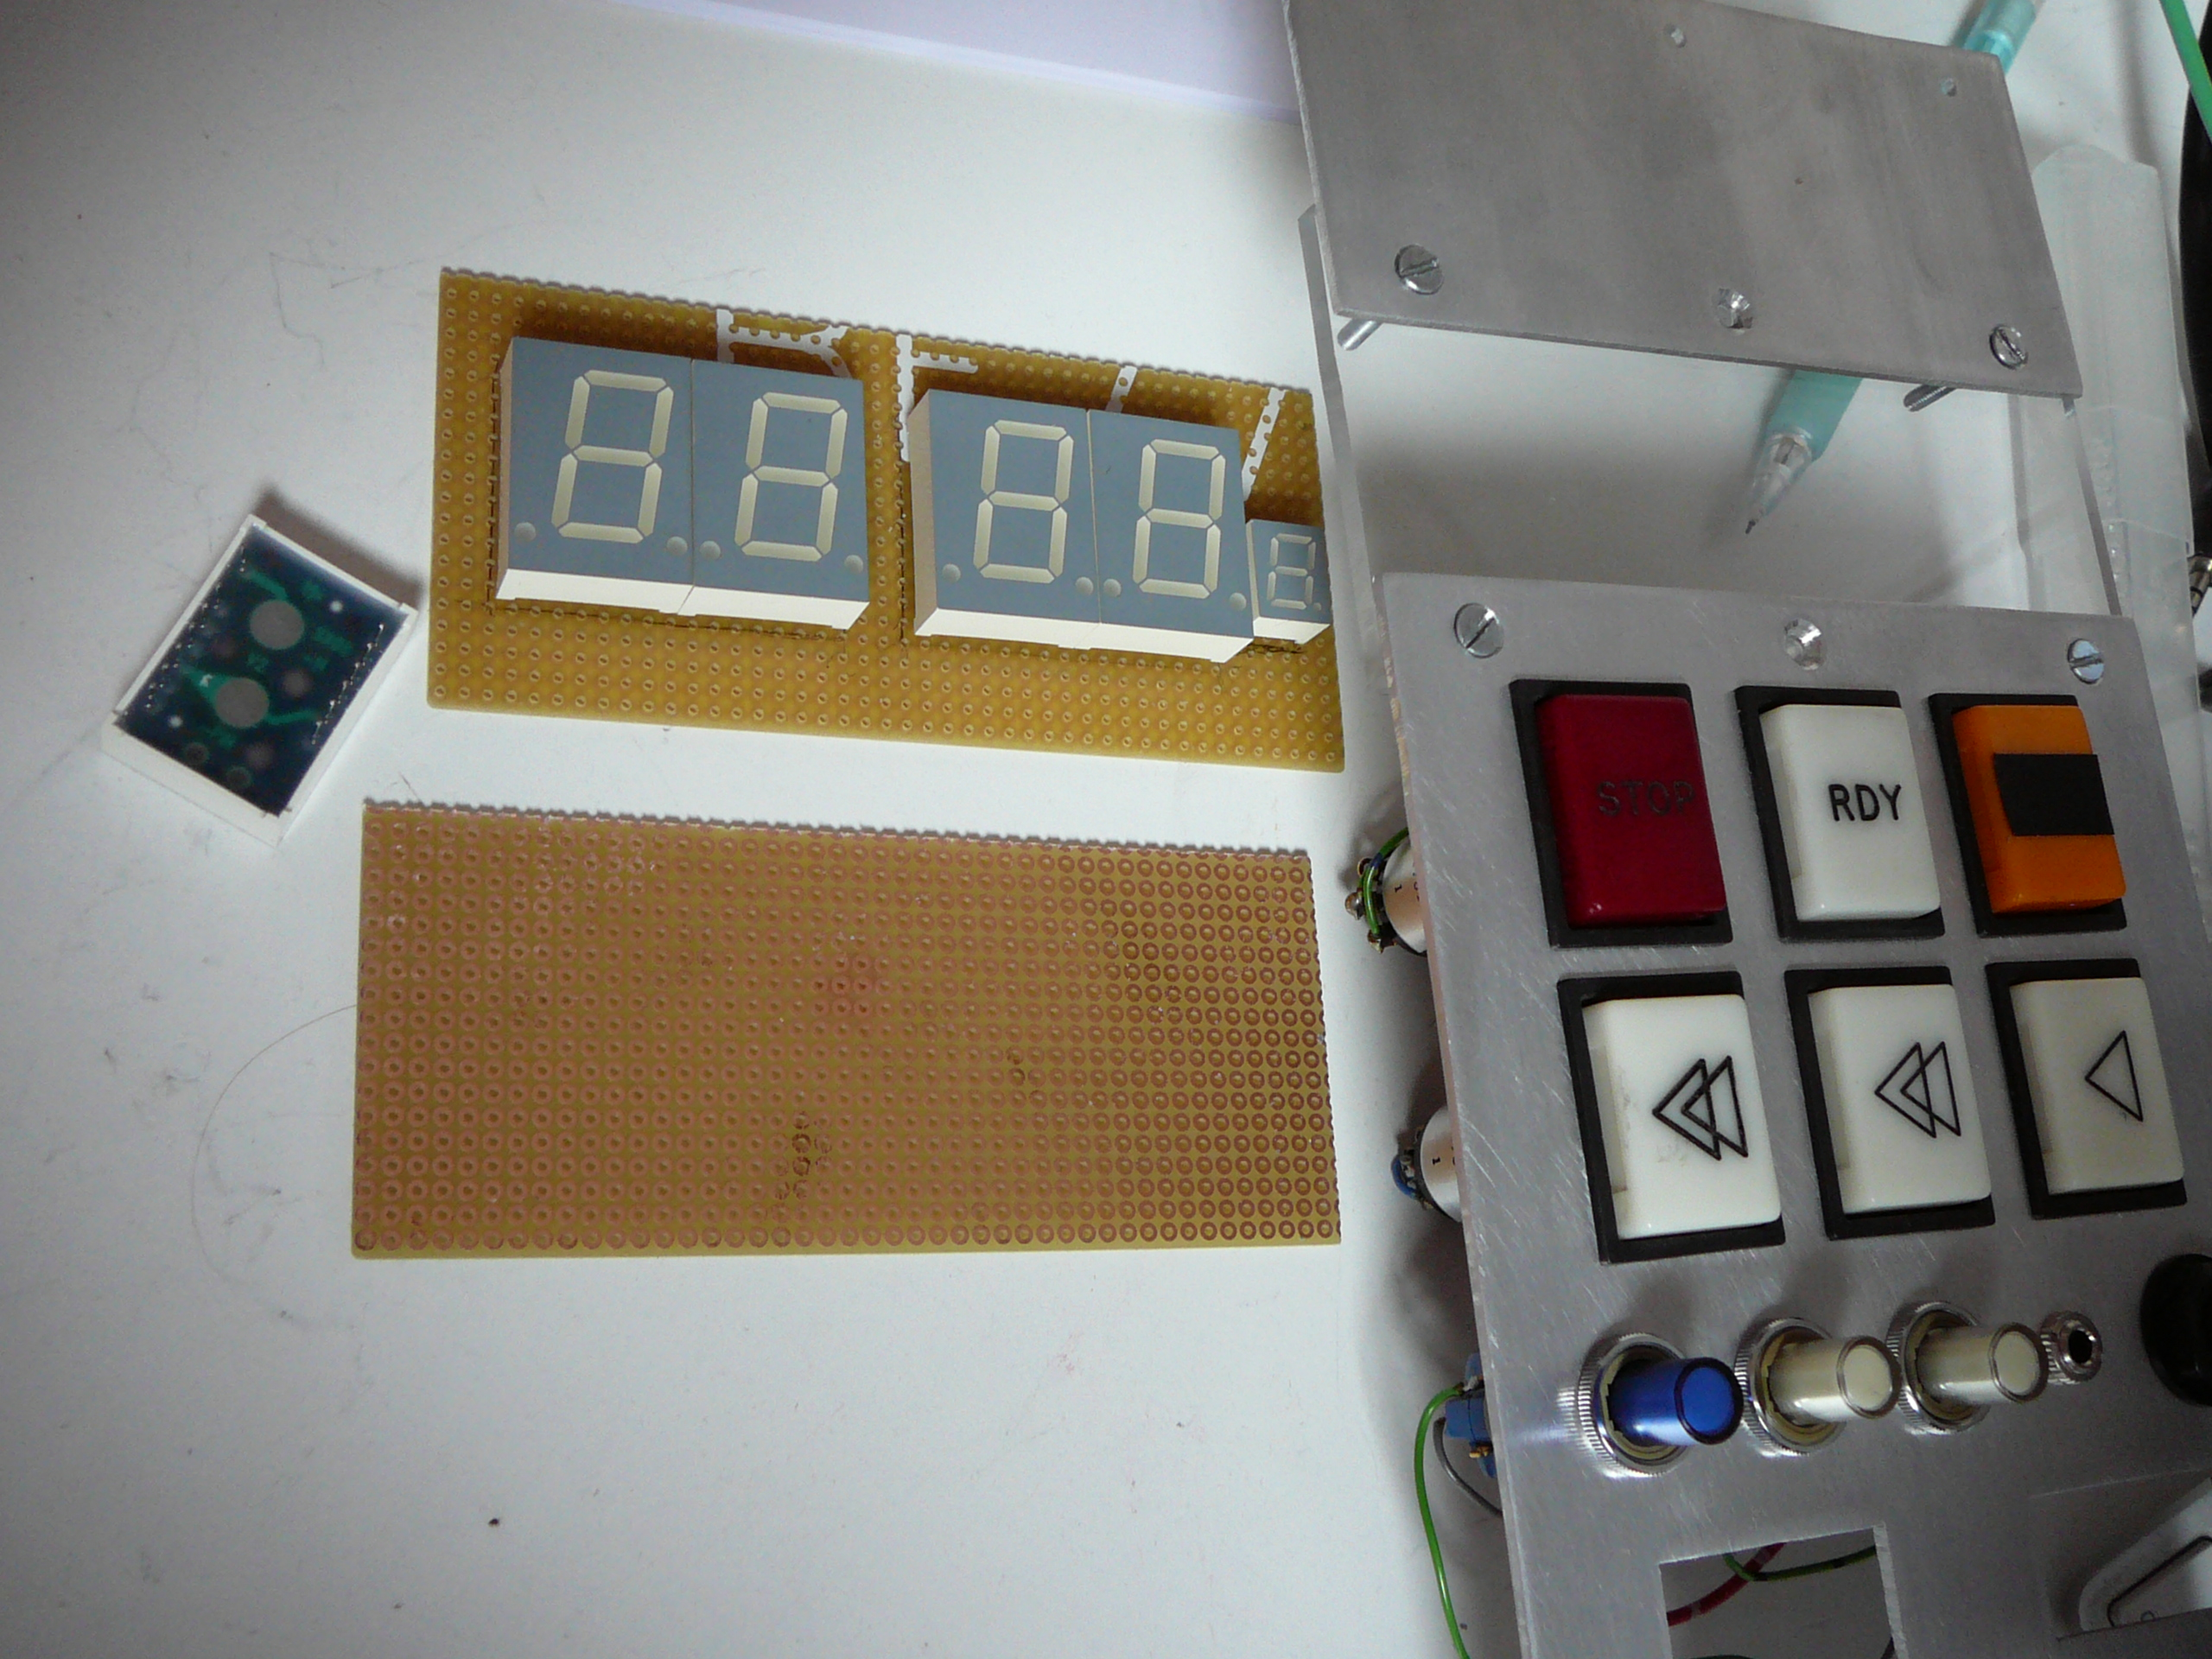 Picture of The Display